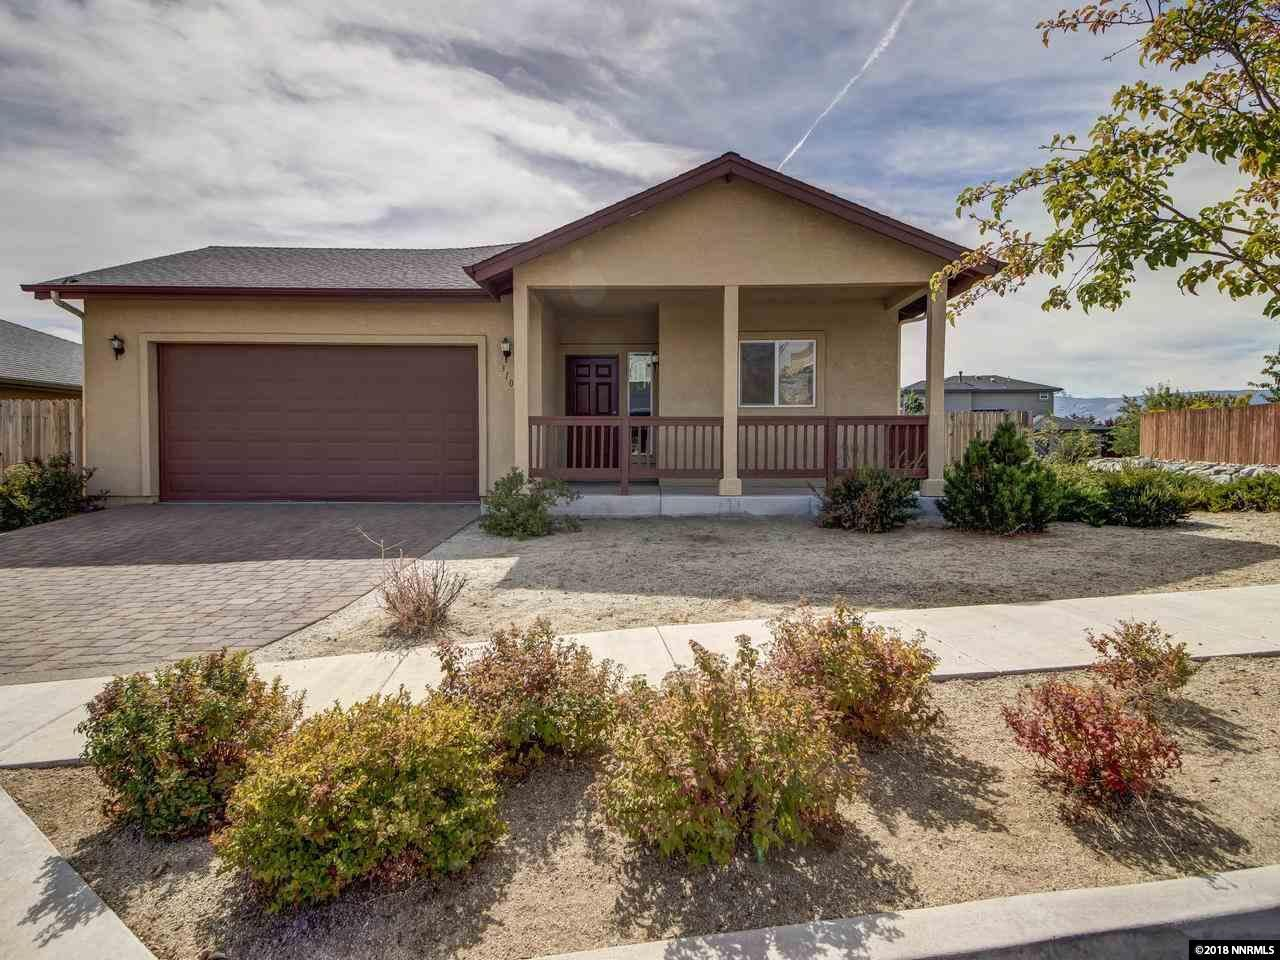 Homes For Sale In Reno Under 300 000 This 3 Bedroom 2 Bath Home In Reno Nv Is Move In Ready Best Places To Live Beautiful Homes Reno